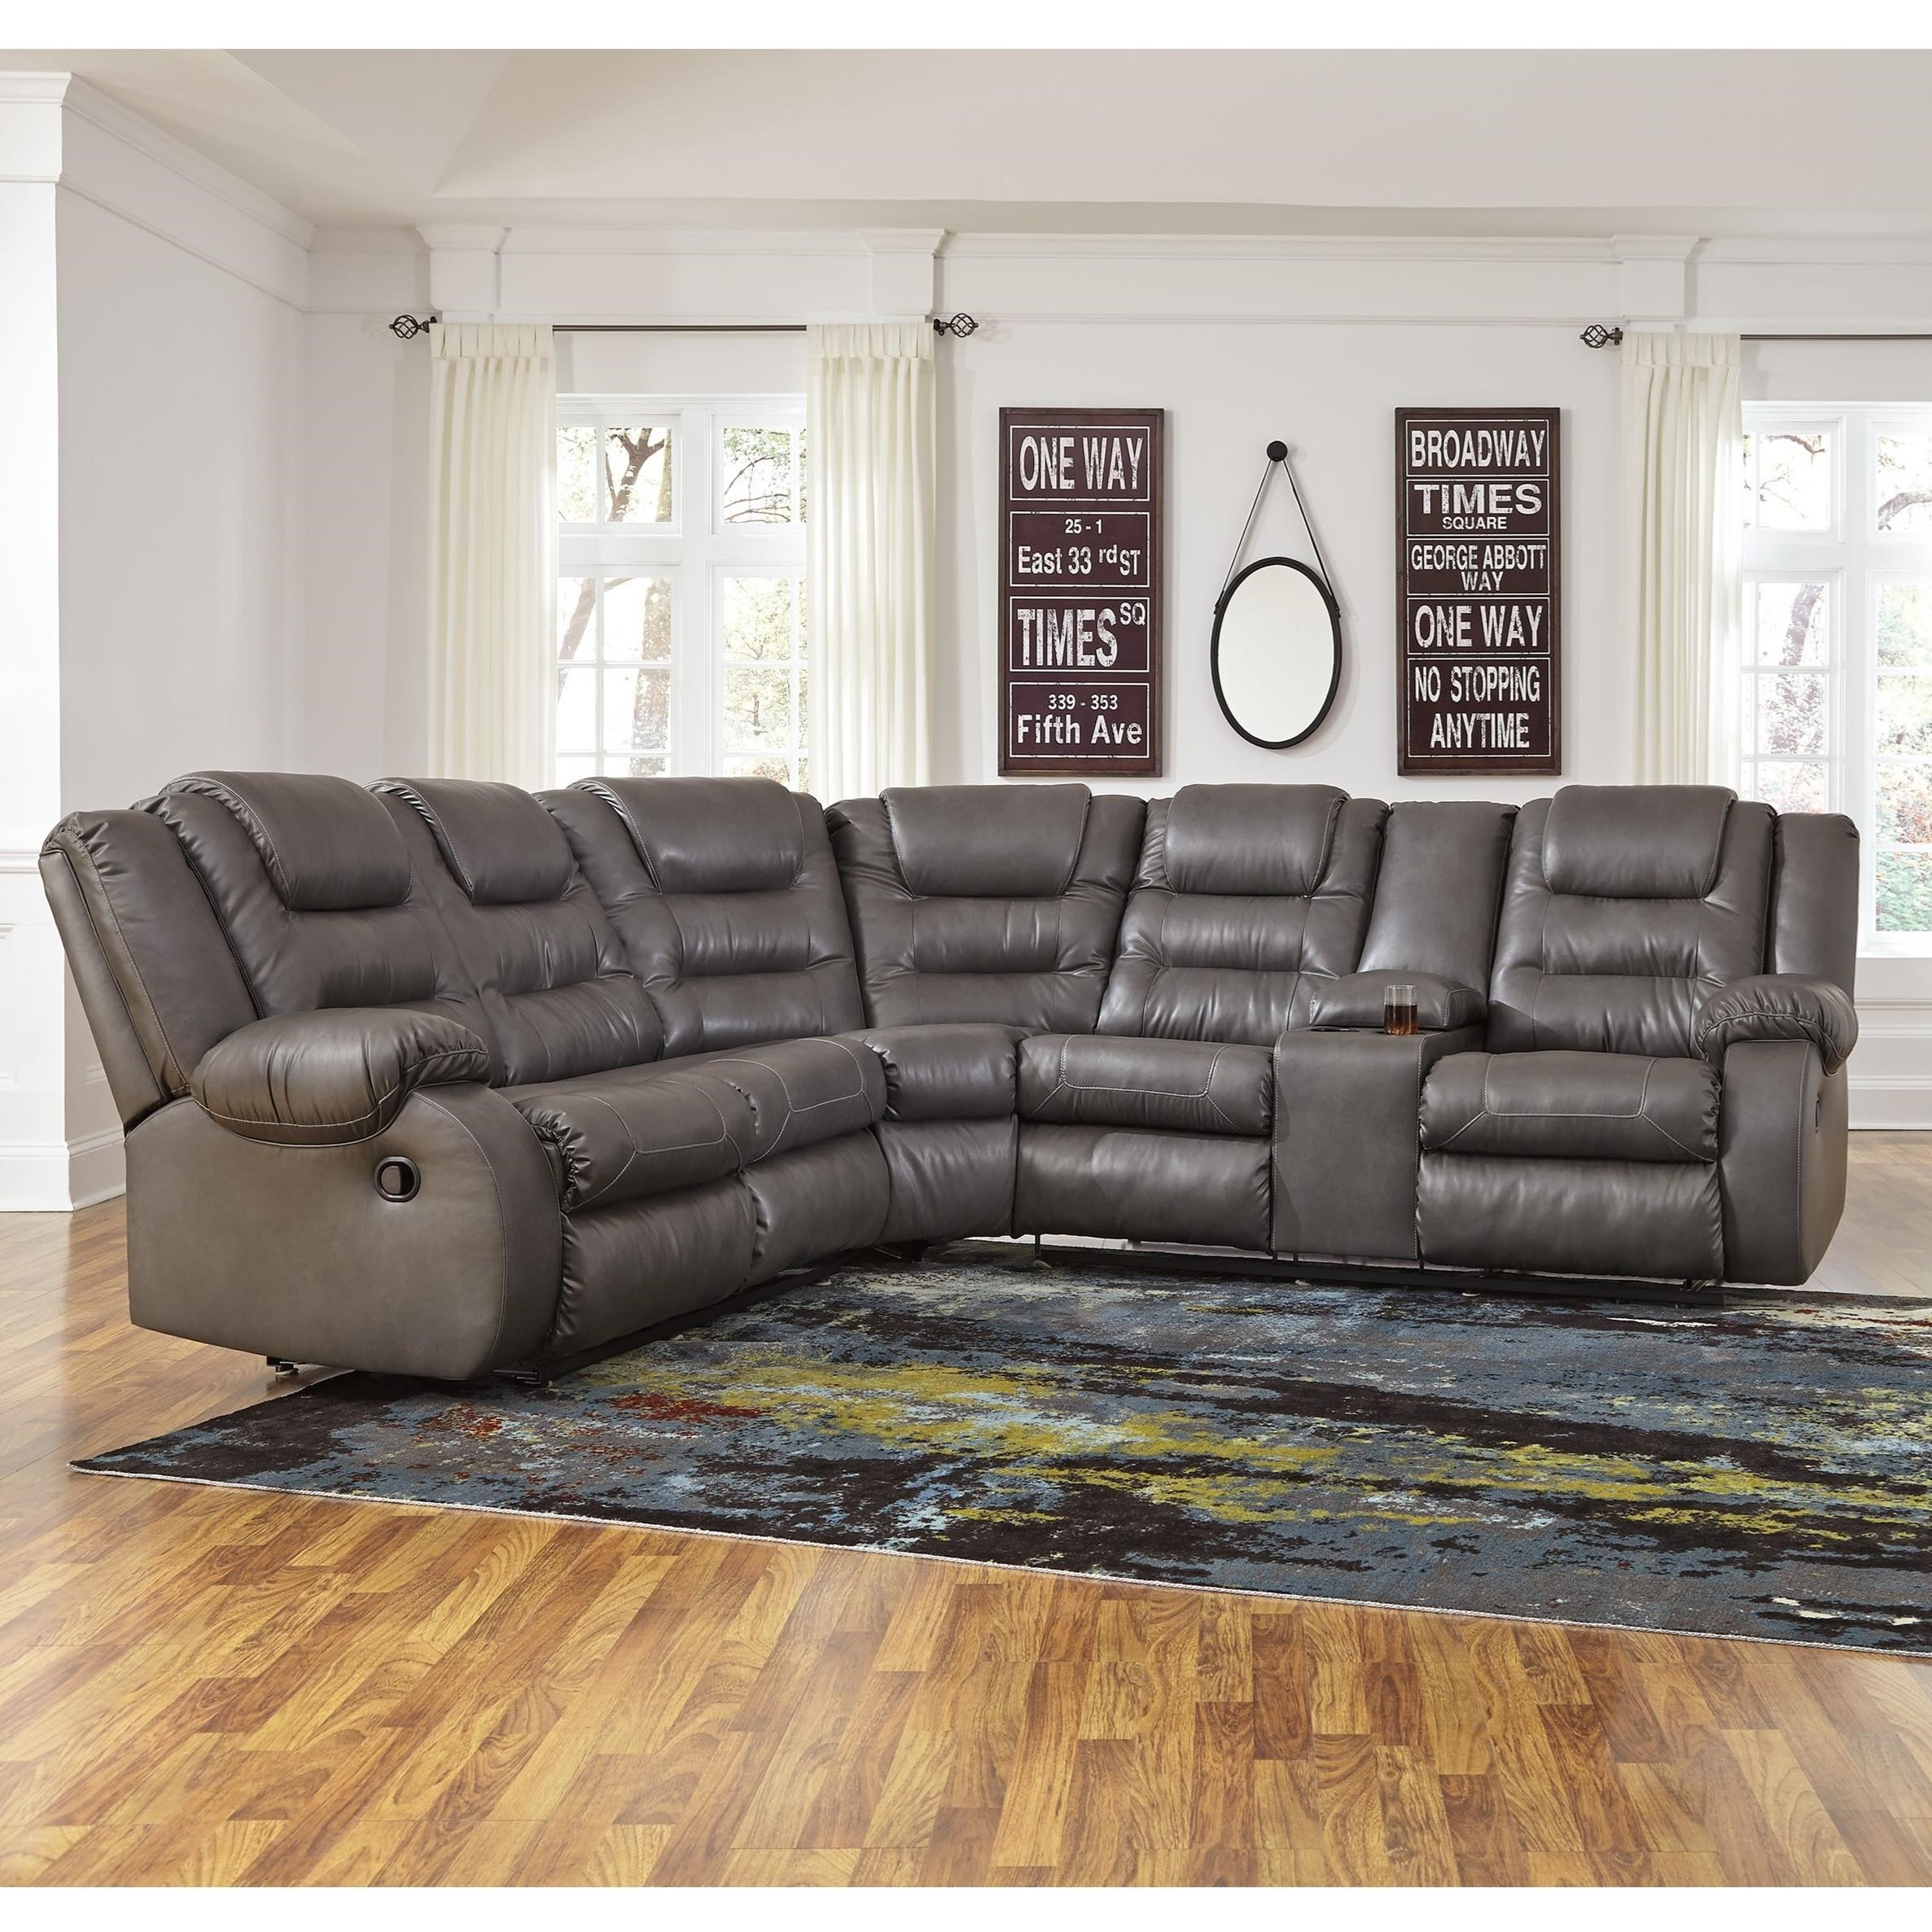 Signature Design by Ashley Walgast L-Shaped Sectional - Item Number: 3810248+49